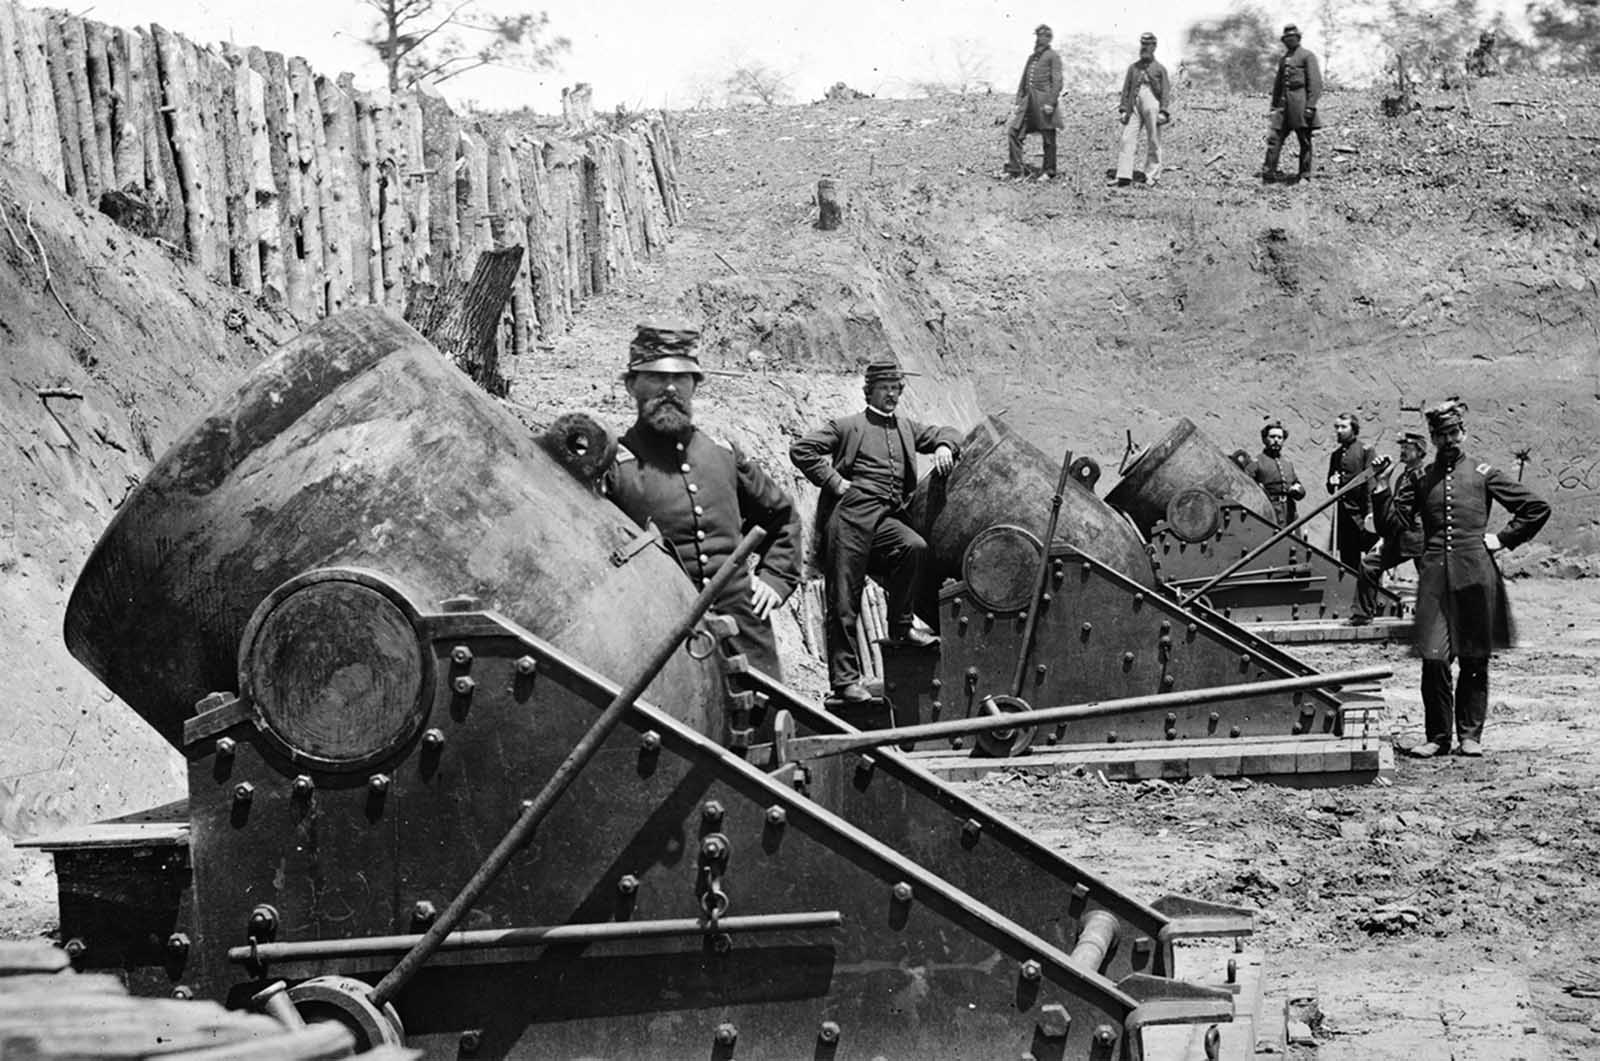 13-inch seacoast mortars of Federal Battery No. 4 with officers of 1st Connecticut Heavy Artillery, near Yorktown, Virginia in May of 1862.